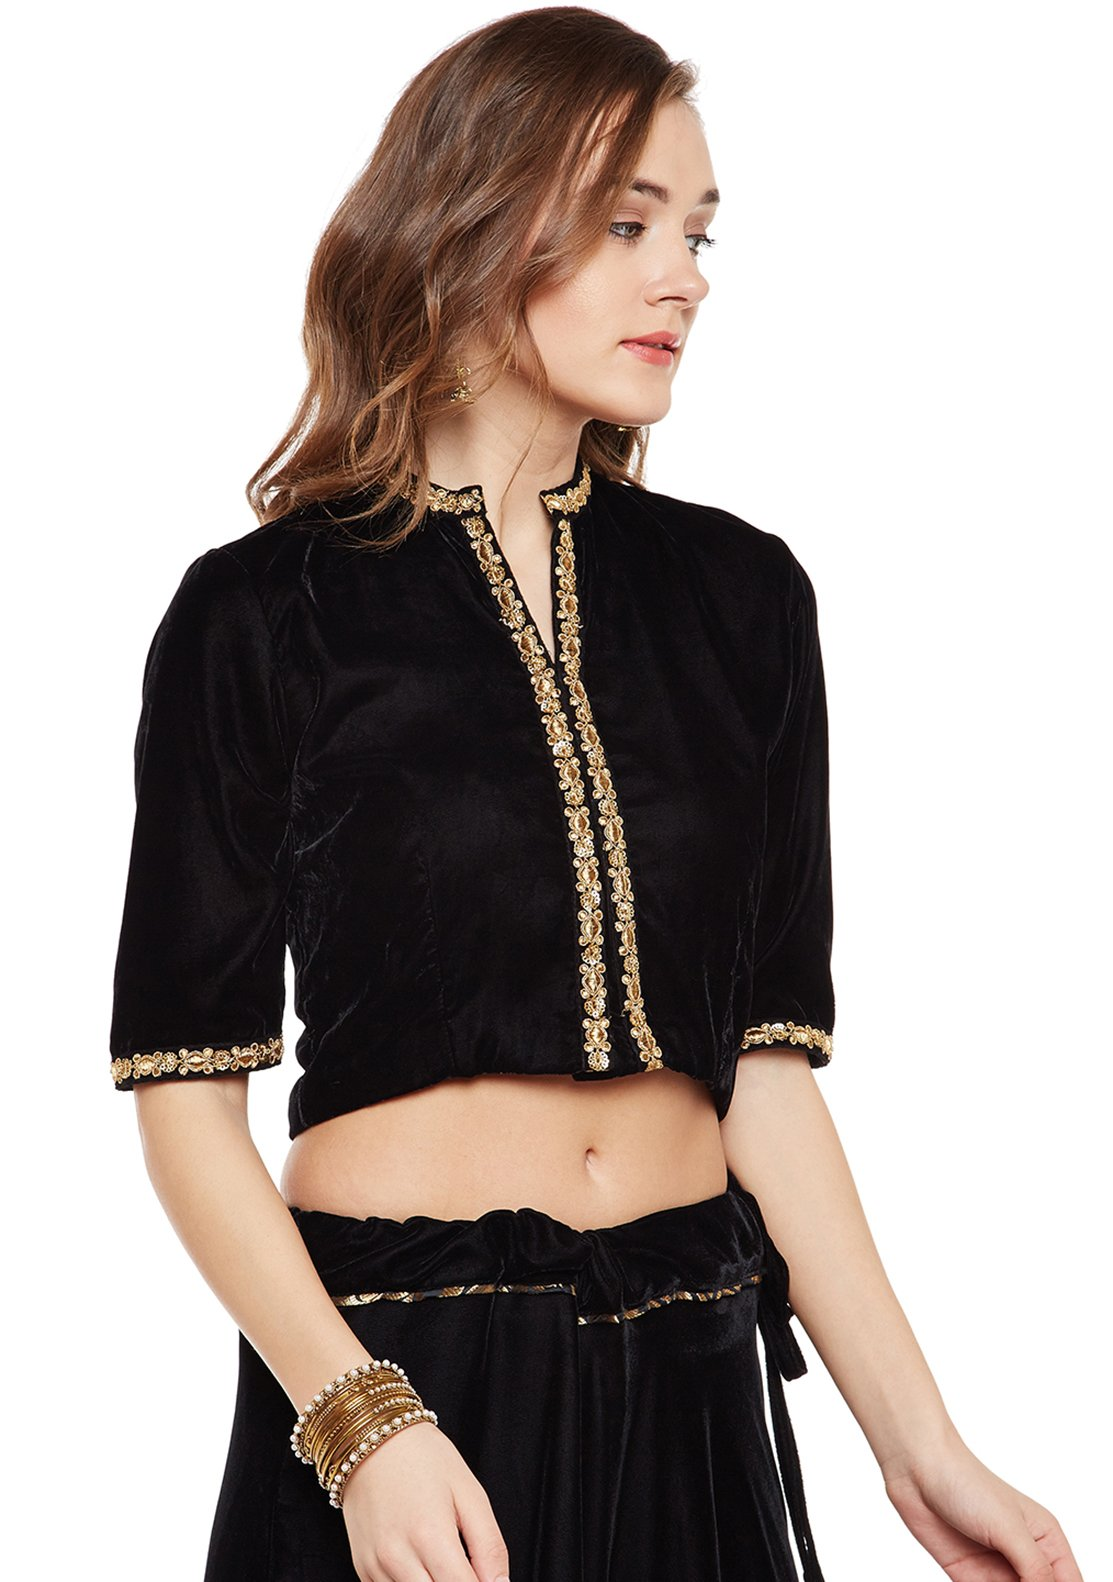 great discount sale get cheap top-rated original Velvet Embellished Crop Top